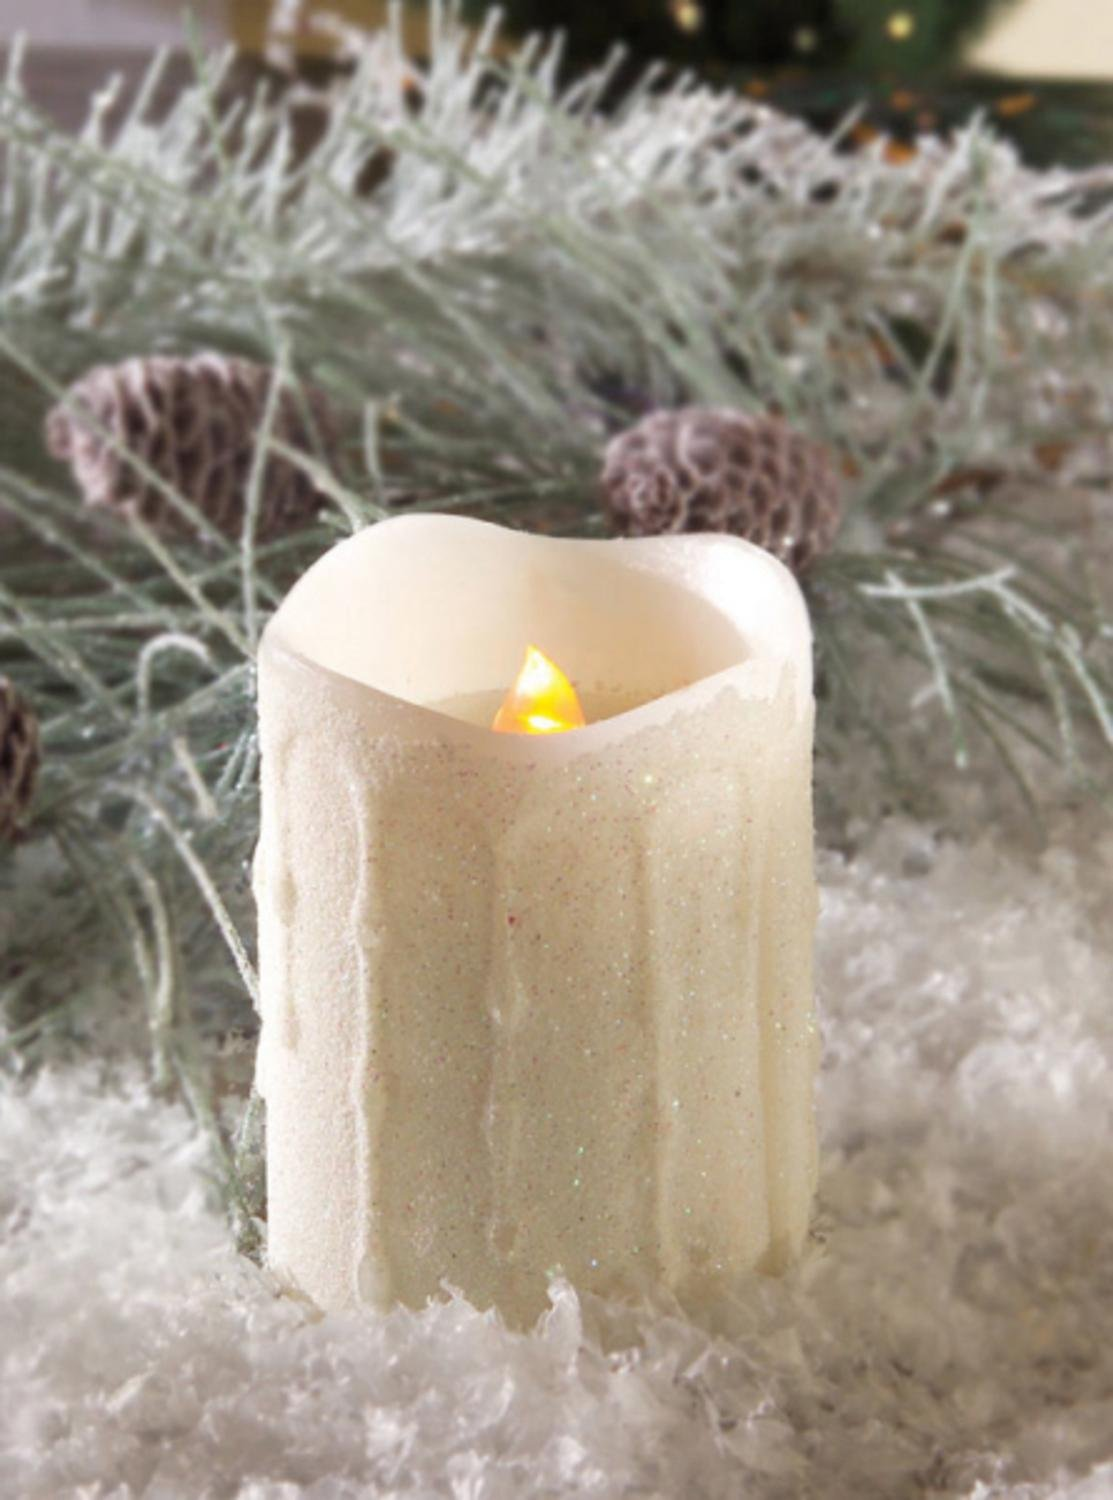 Pack of 6 White Glitter Flameless LED Flickering Christmas Pillar Candles 4'' by CC Christmas Decor